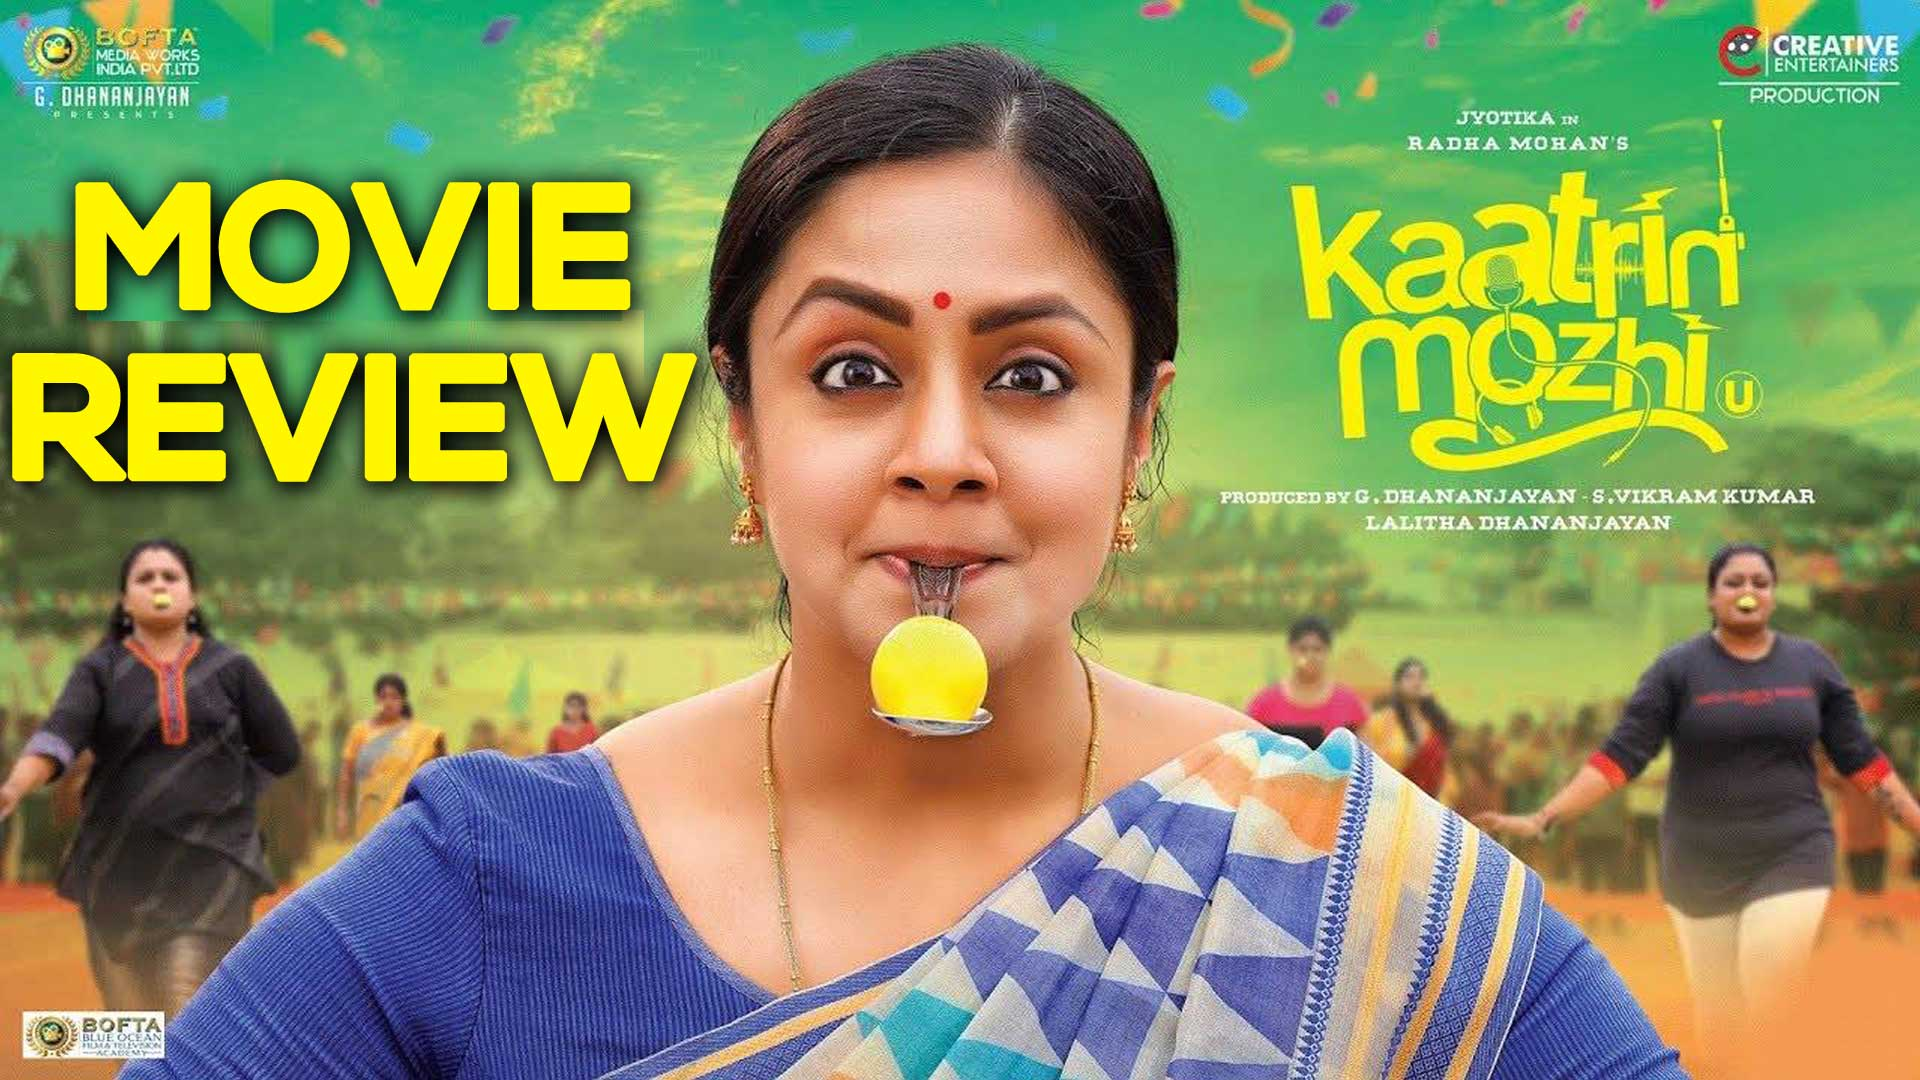 Kaatrin Mozhi Movie Review by Praveena | Jyothika, Vidharth, Lakshmi Manchu | Kaatrin Mozhi Review